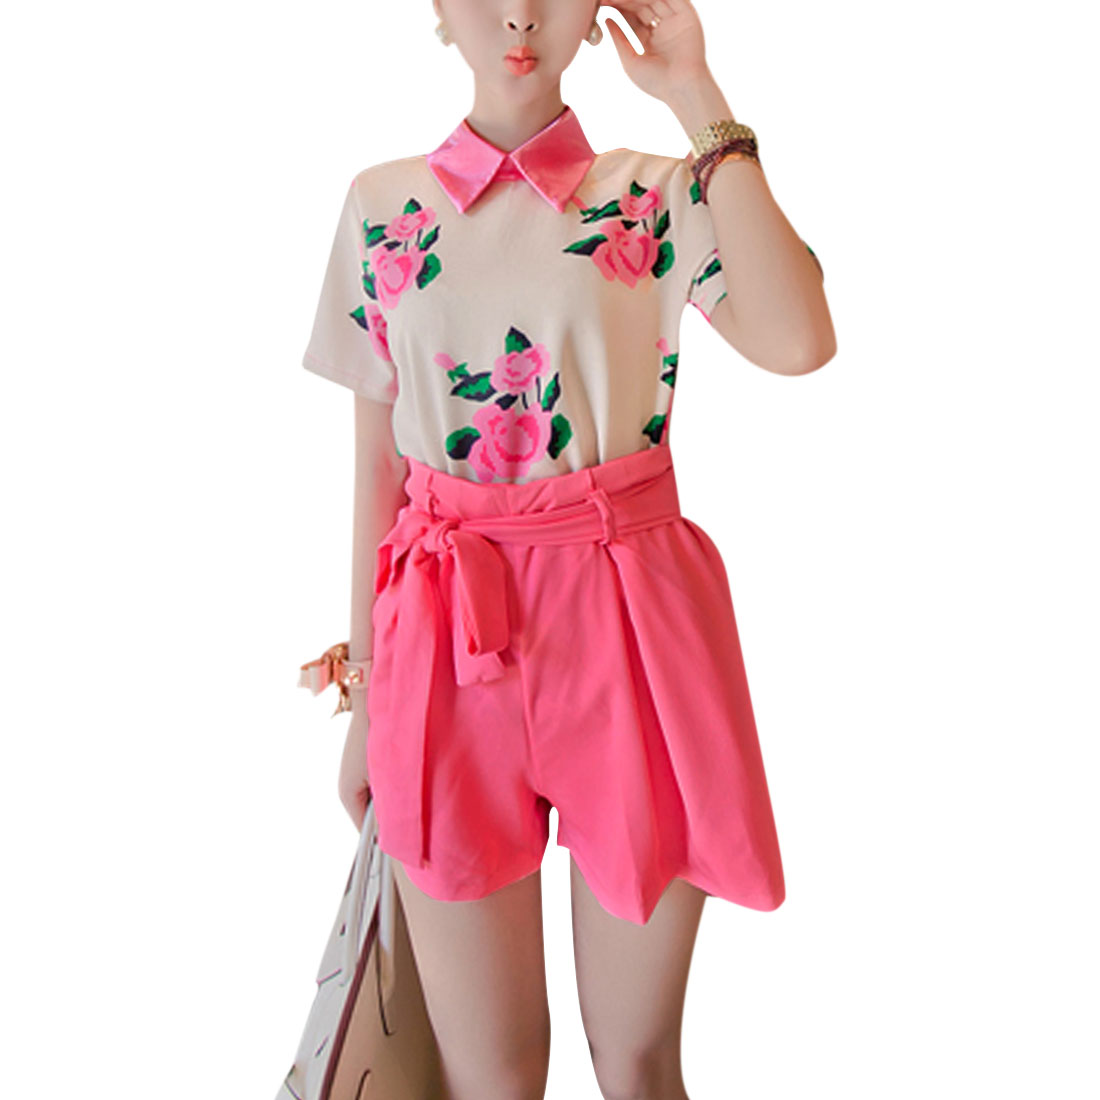 Lady Short Sleeve Flower Prints Blouse w Stretchy Waist Fuchsia Beige Shorts XS